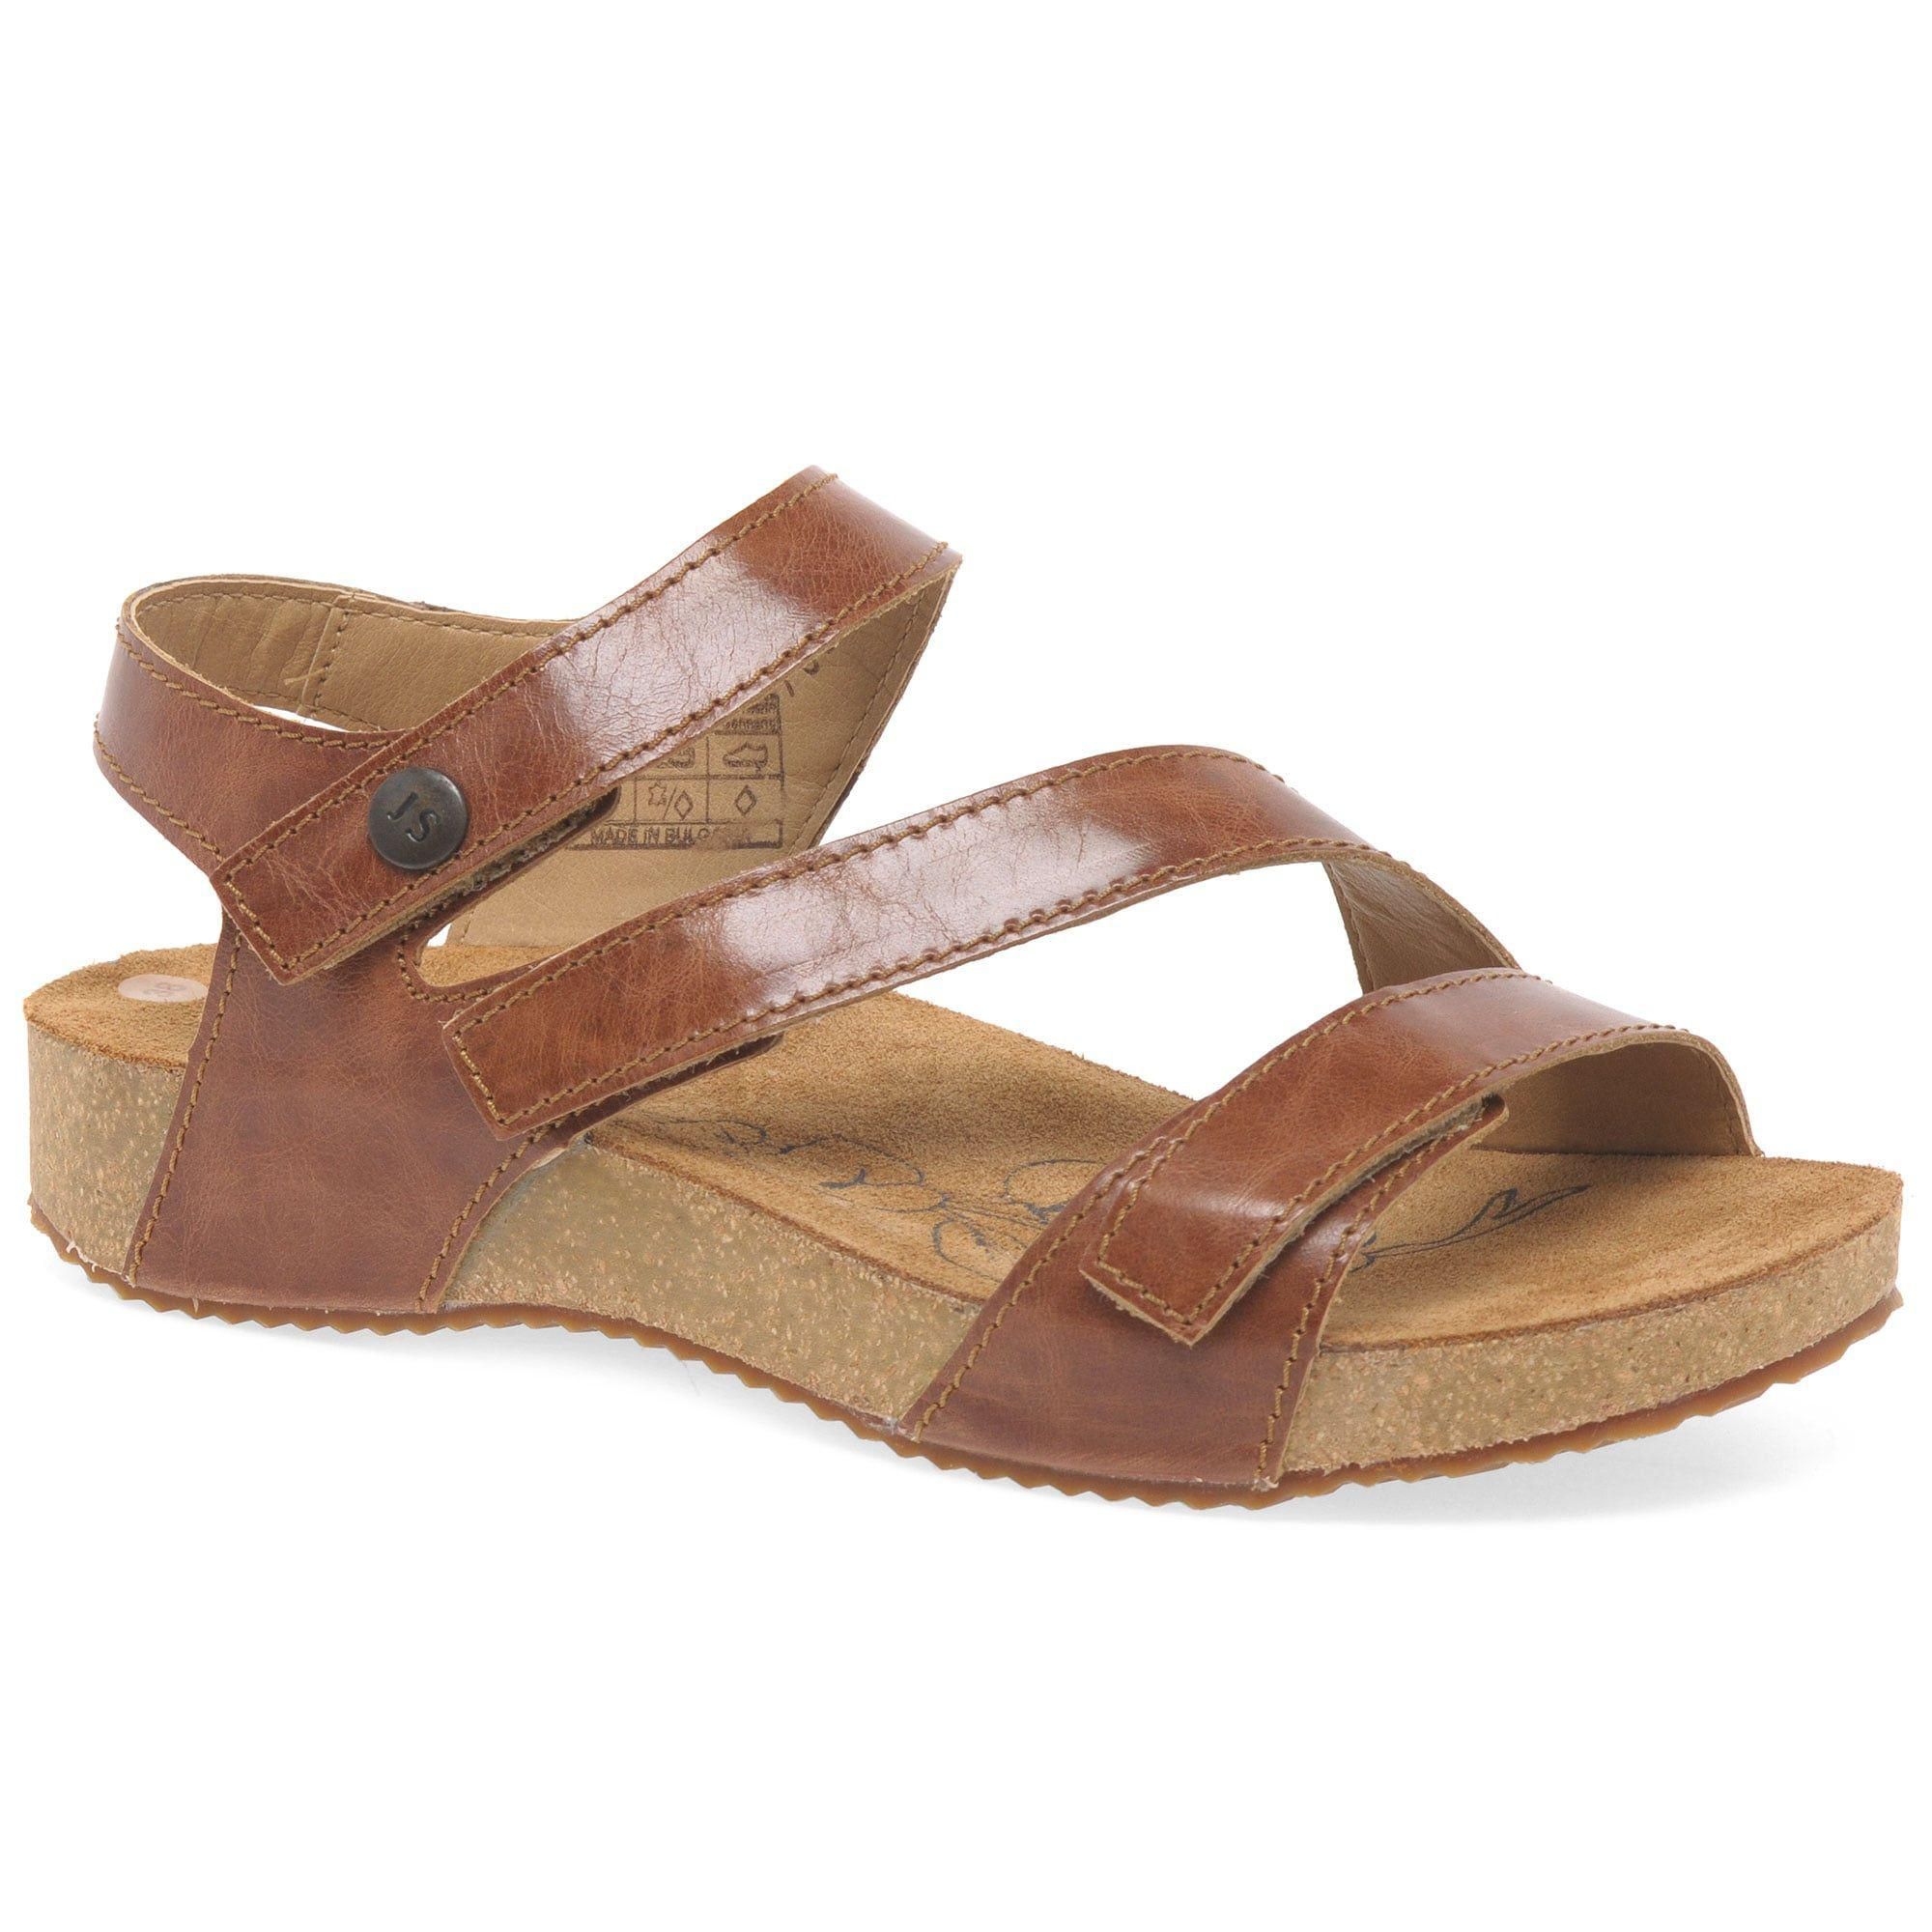 8bf56f127c48 Josef Seibel Camel  tonga 25  Womens Leather Sandals in Natural - Lyst